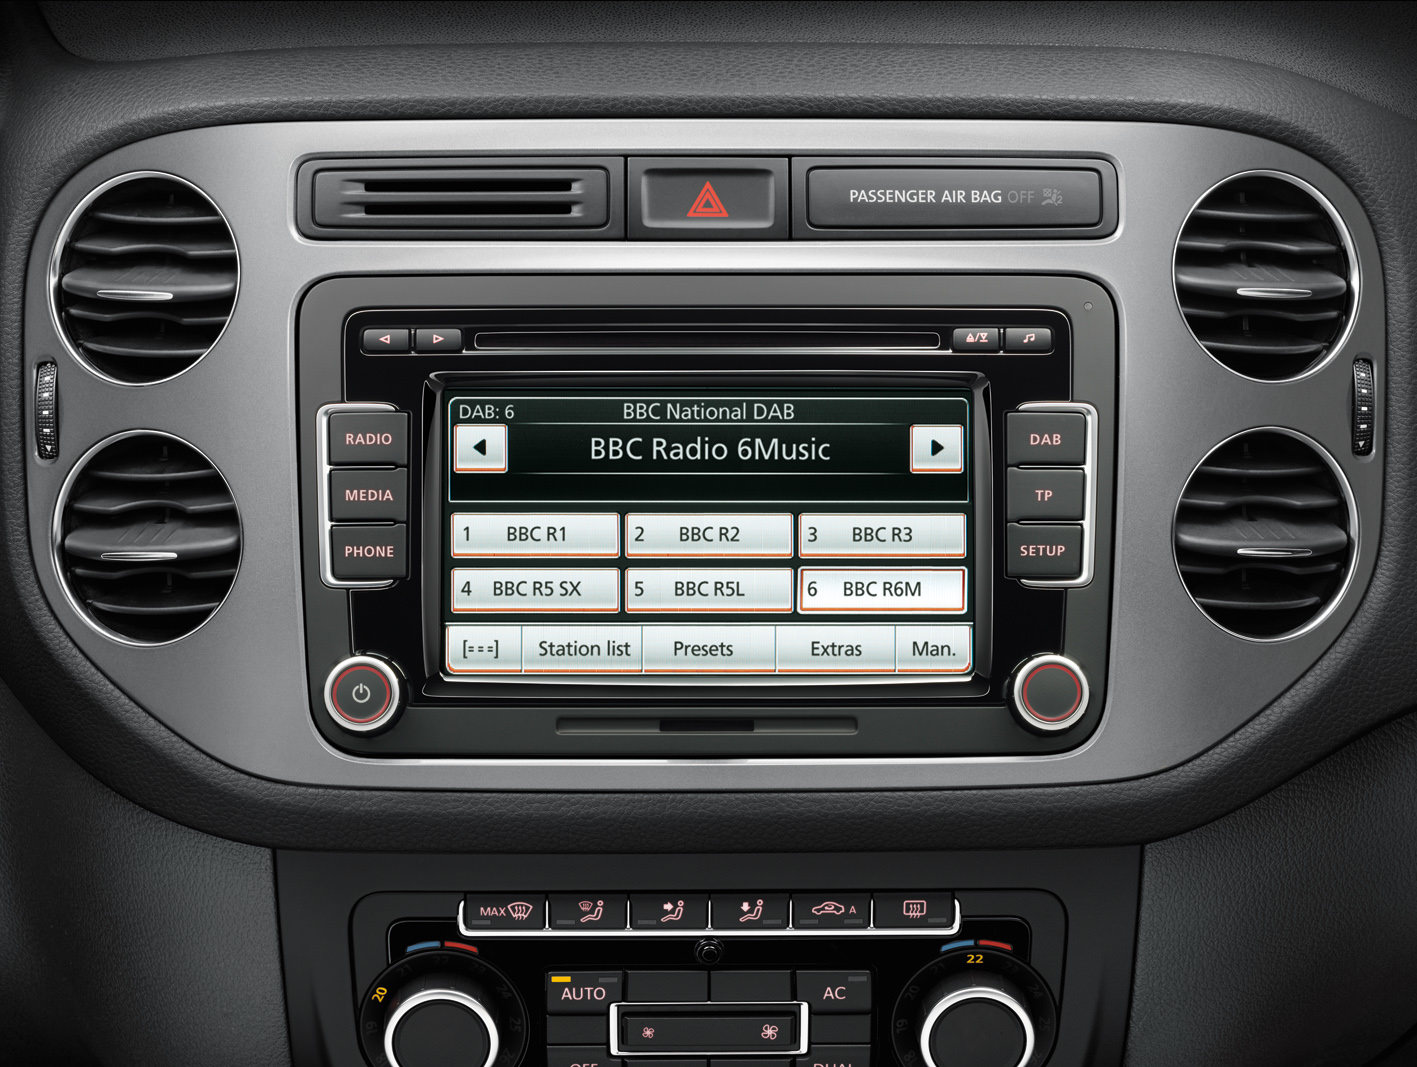 image of a car dab radio